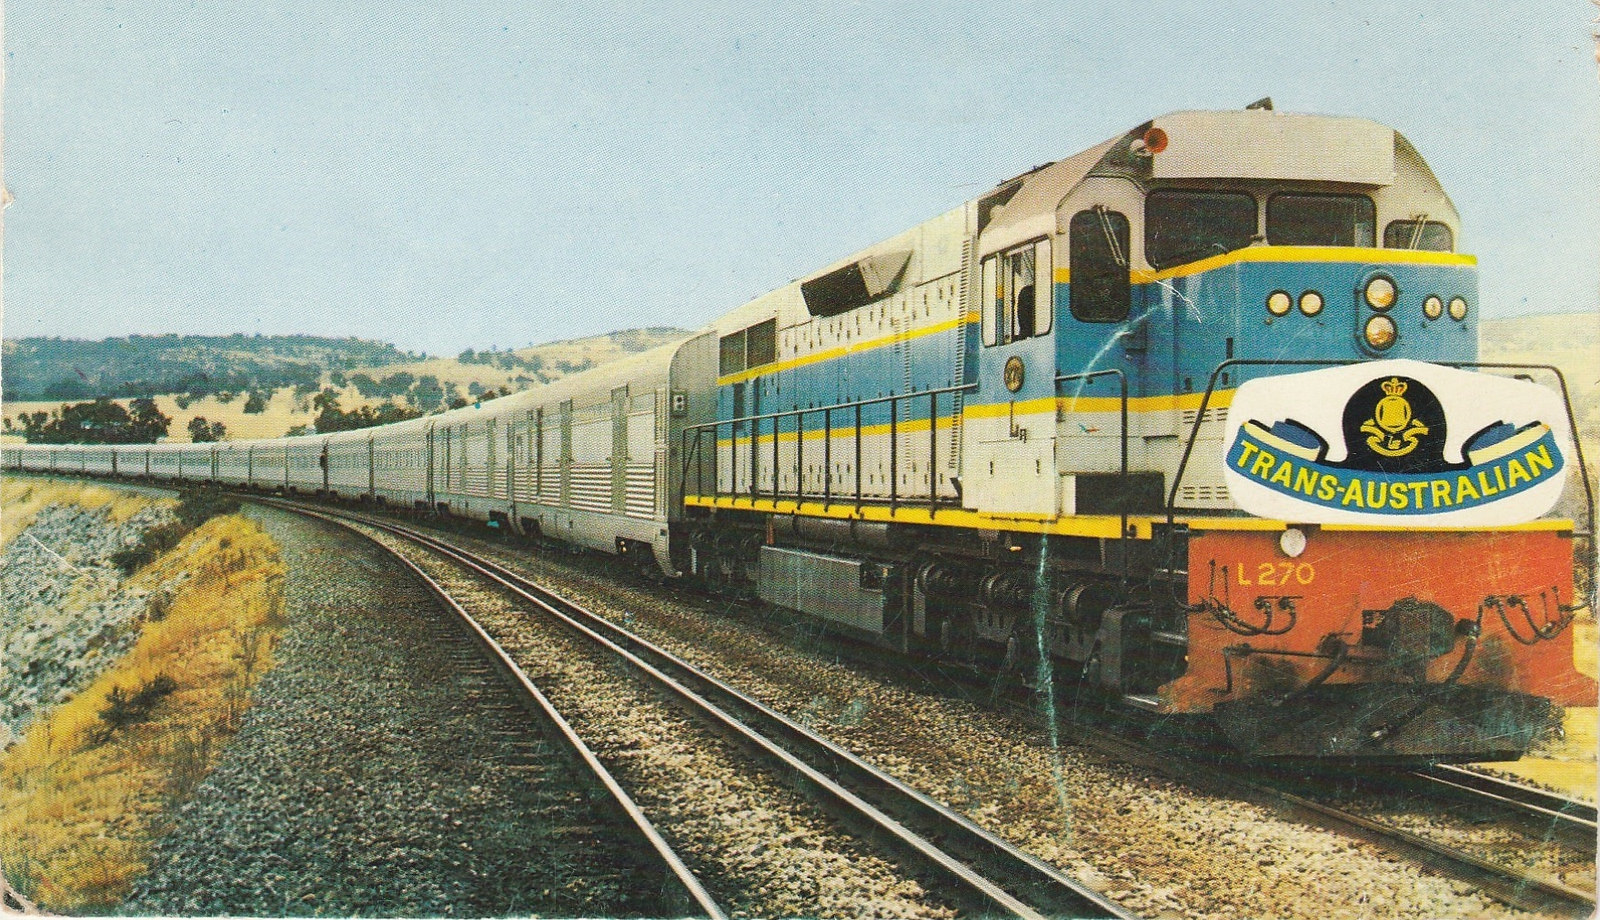 Old postcard with a picture of a Trans-Australian train